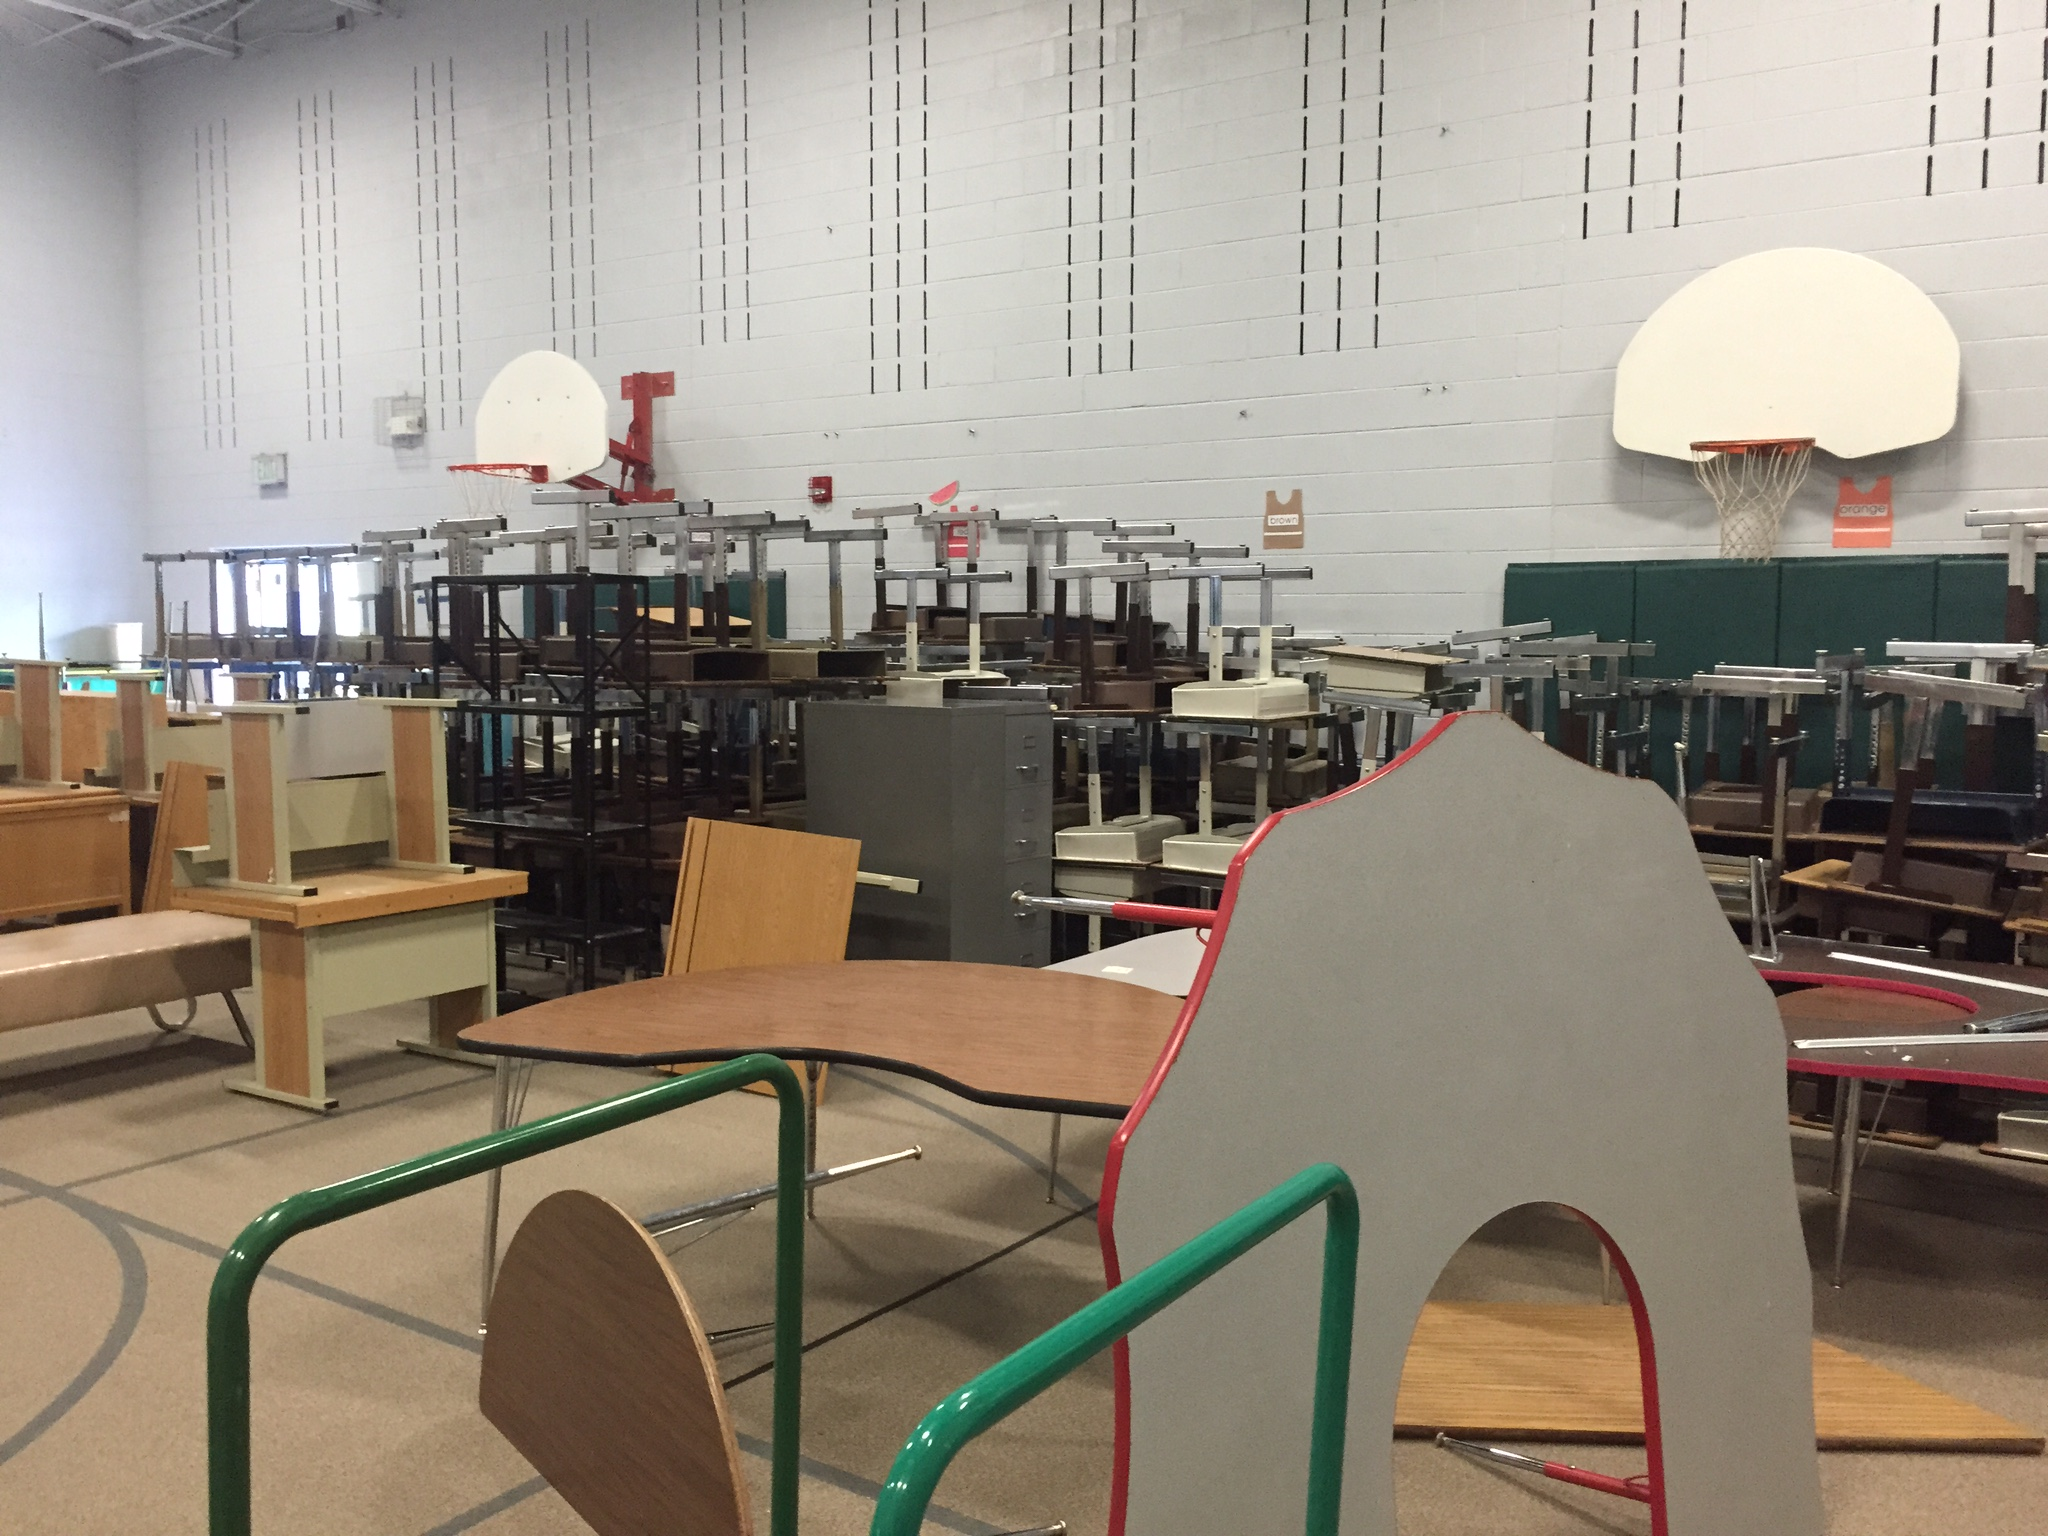 Reuse Furniture irn: the reuse network | k-12: 15,000 student desks, chairs, and